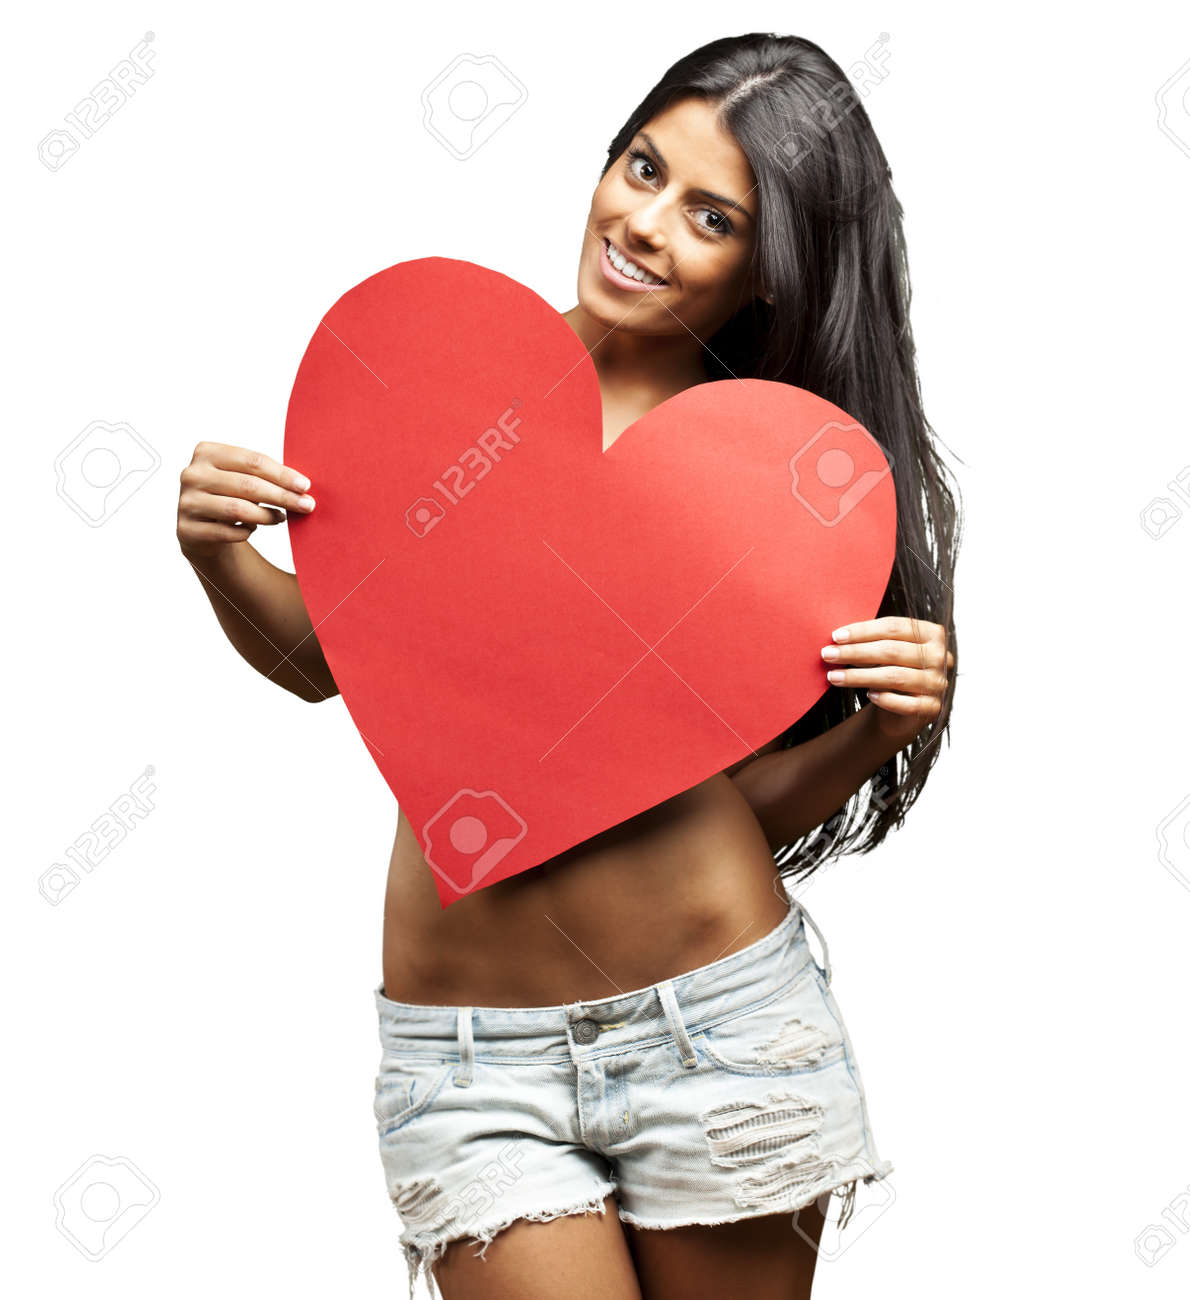 portrait of young woman holding red heart against a white background Stock Photo - 14439019